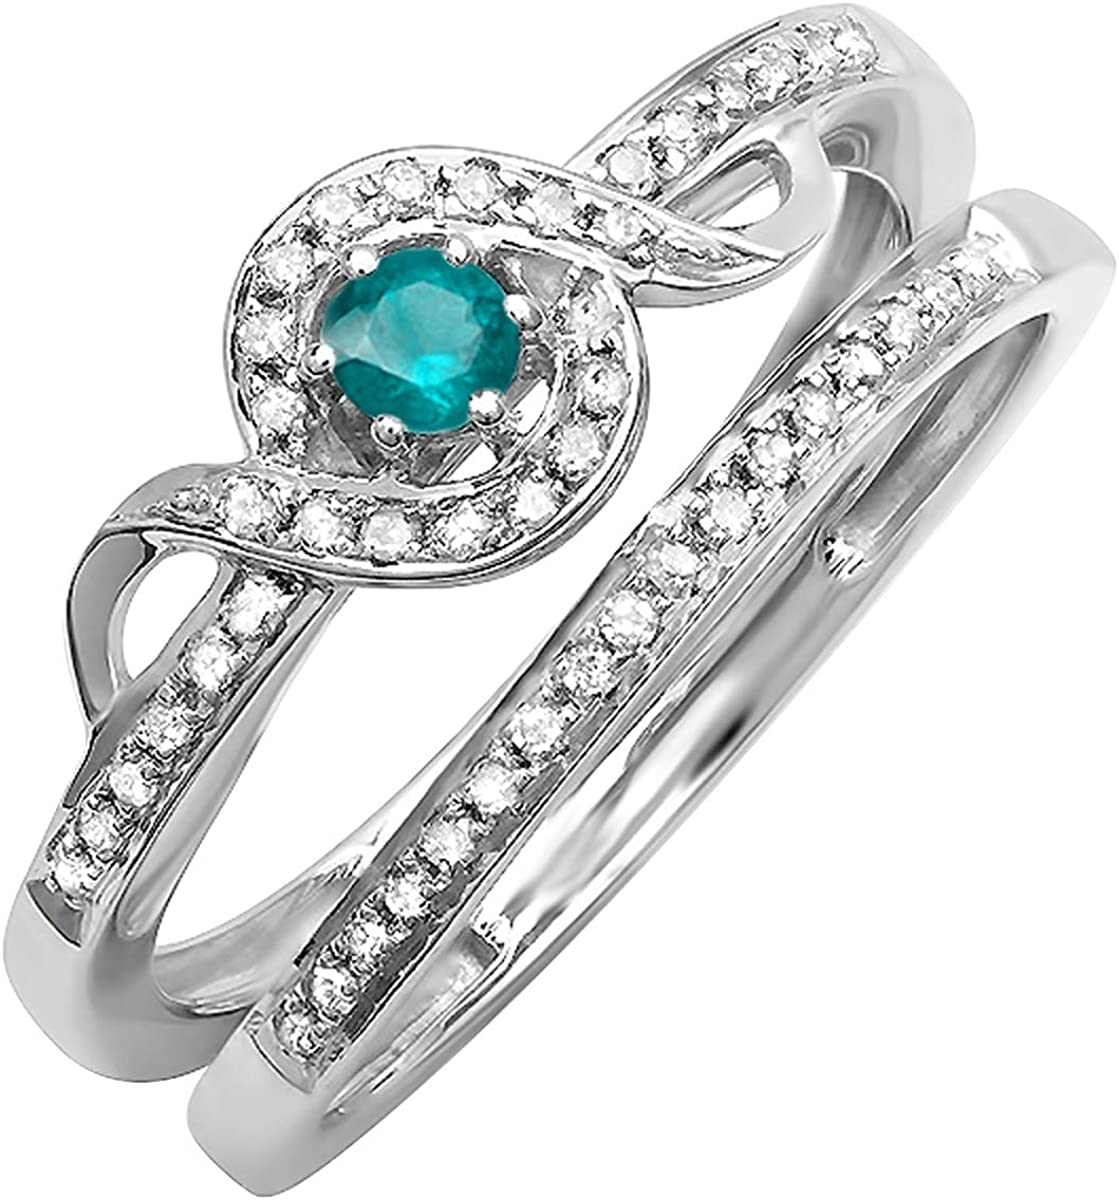 Dazzlingrock Collection 0.25 Carat ctw Round Diam Blue 67% OFF of fixed price Cheap super special price White